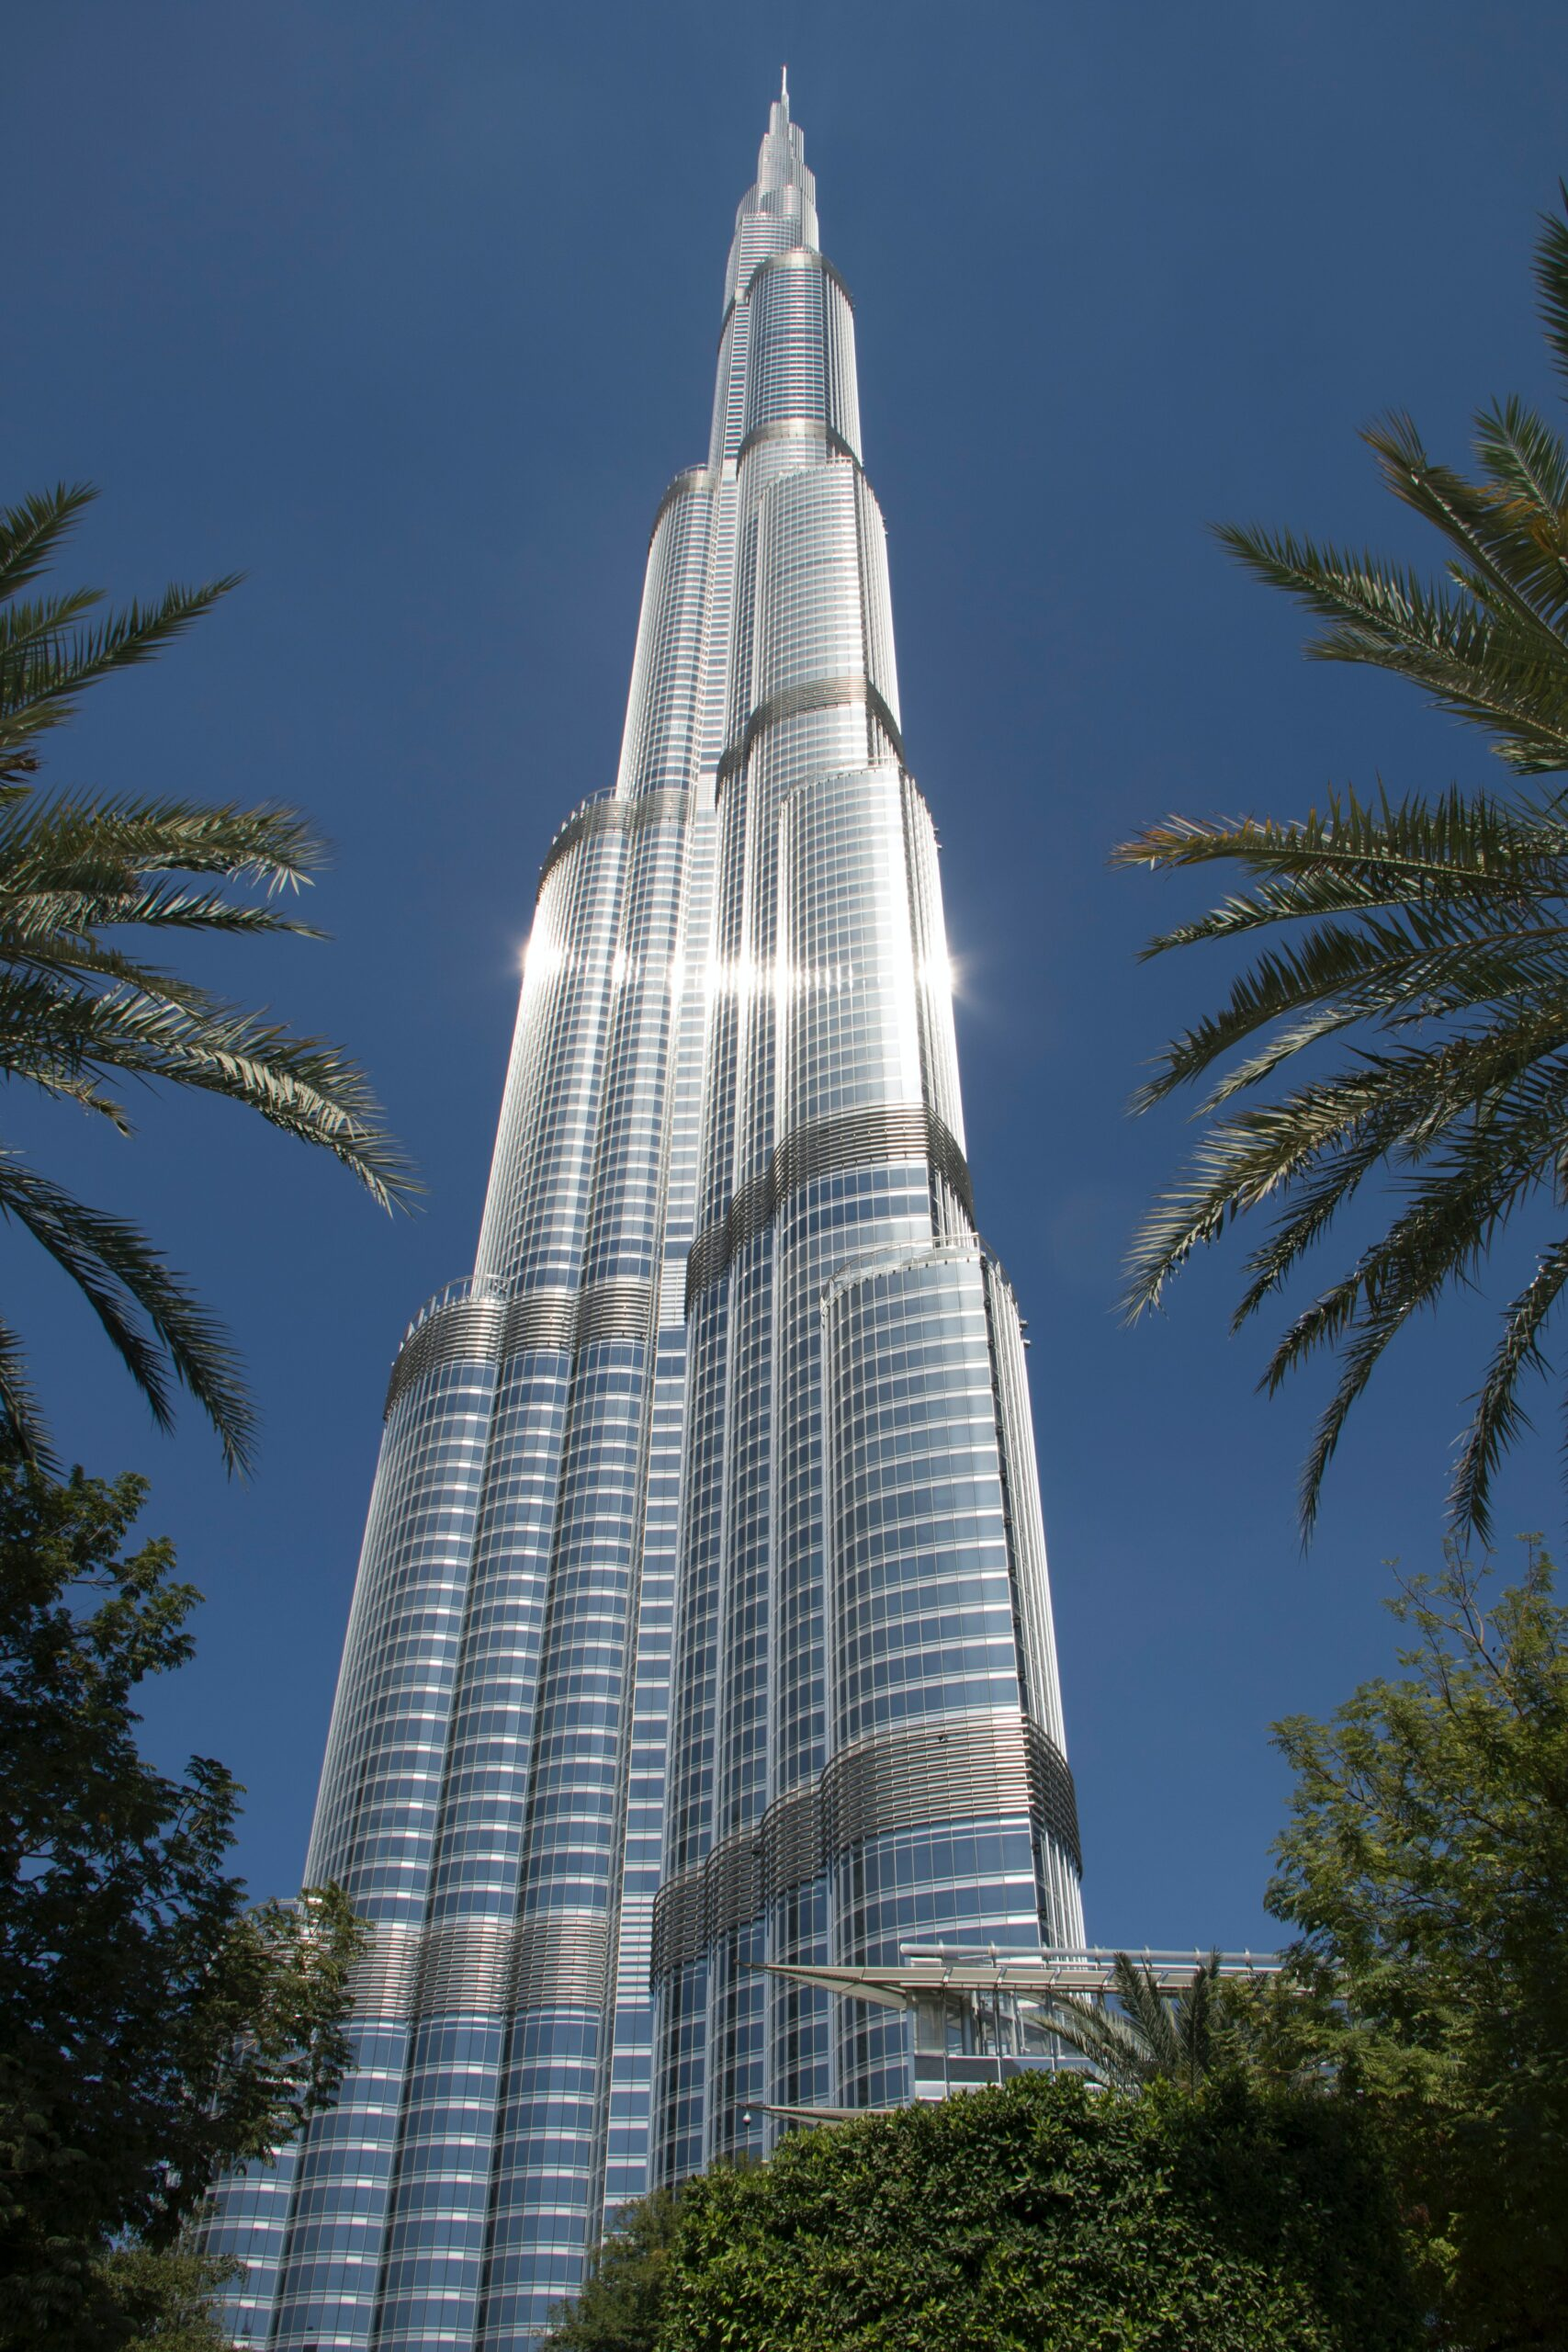 Visit The Tallest Building In The World On Our Dubai Night Tour & Dhow Cruise Dinner